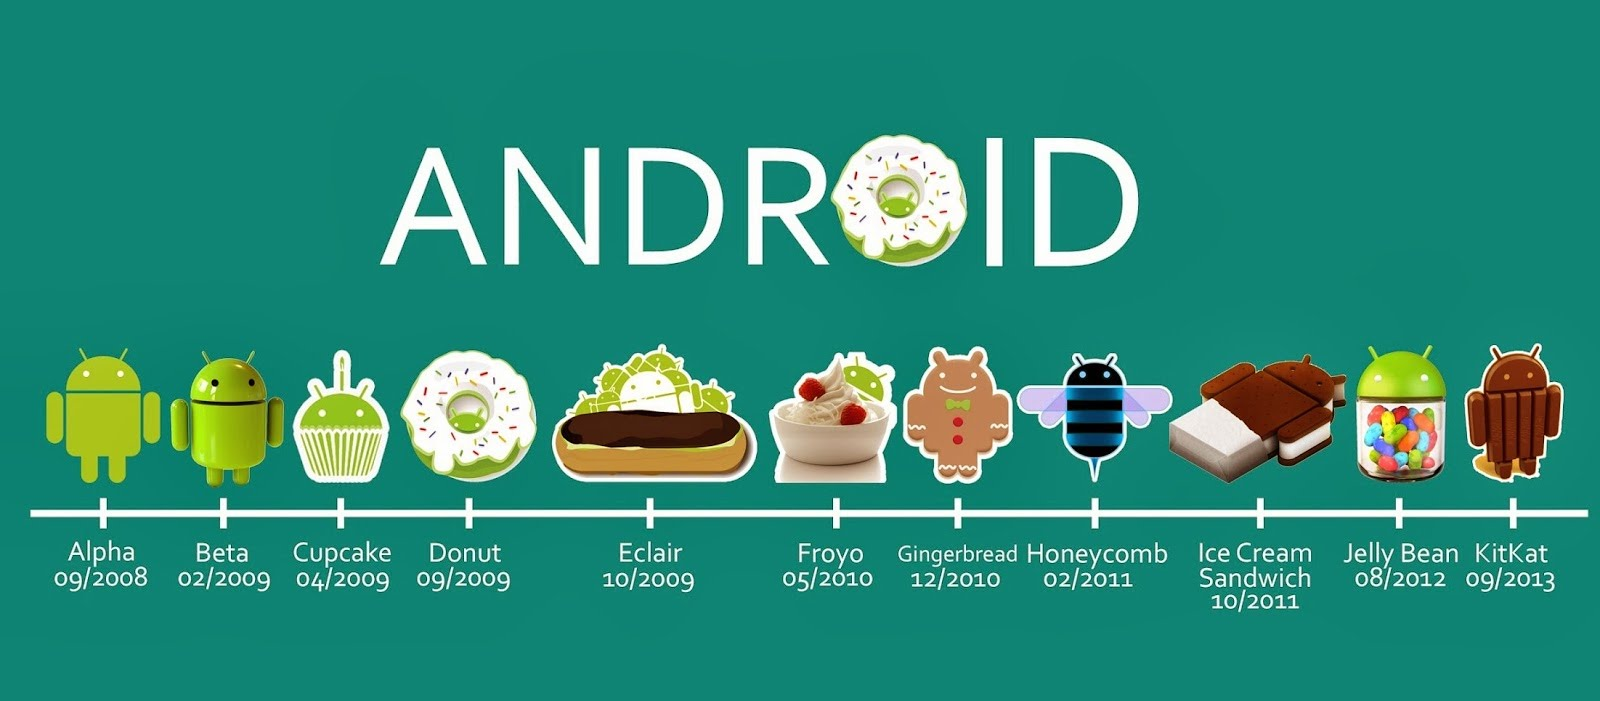 android version history every os from cupcake to lollipop android version history every os from